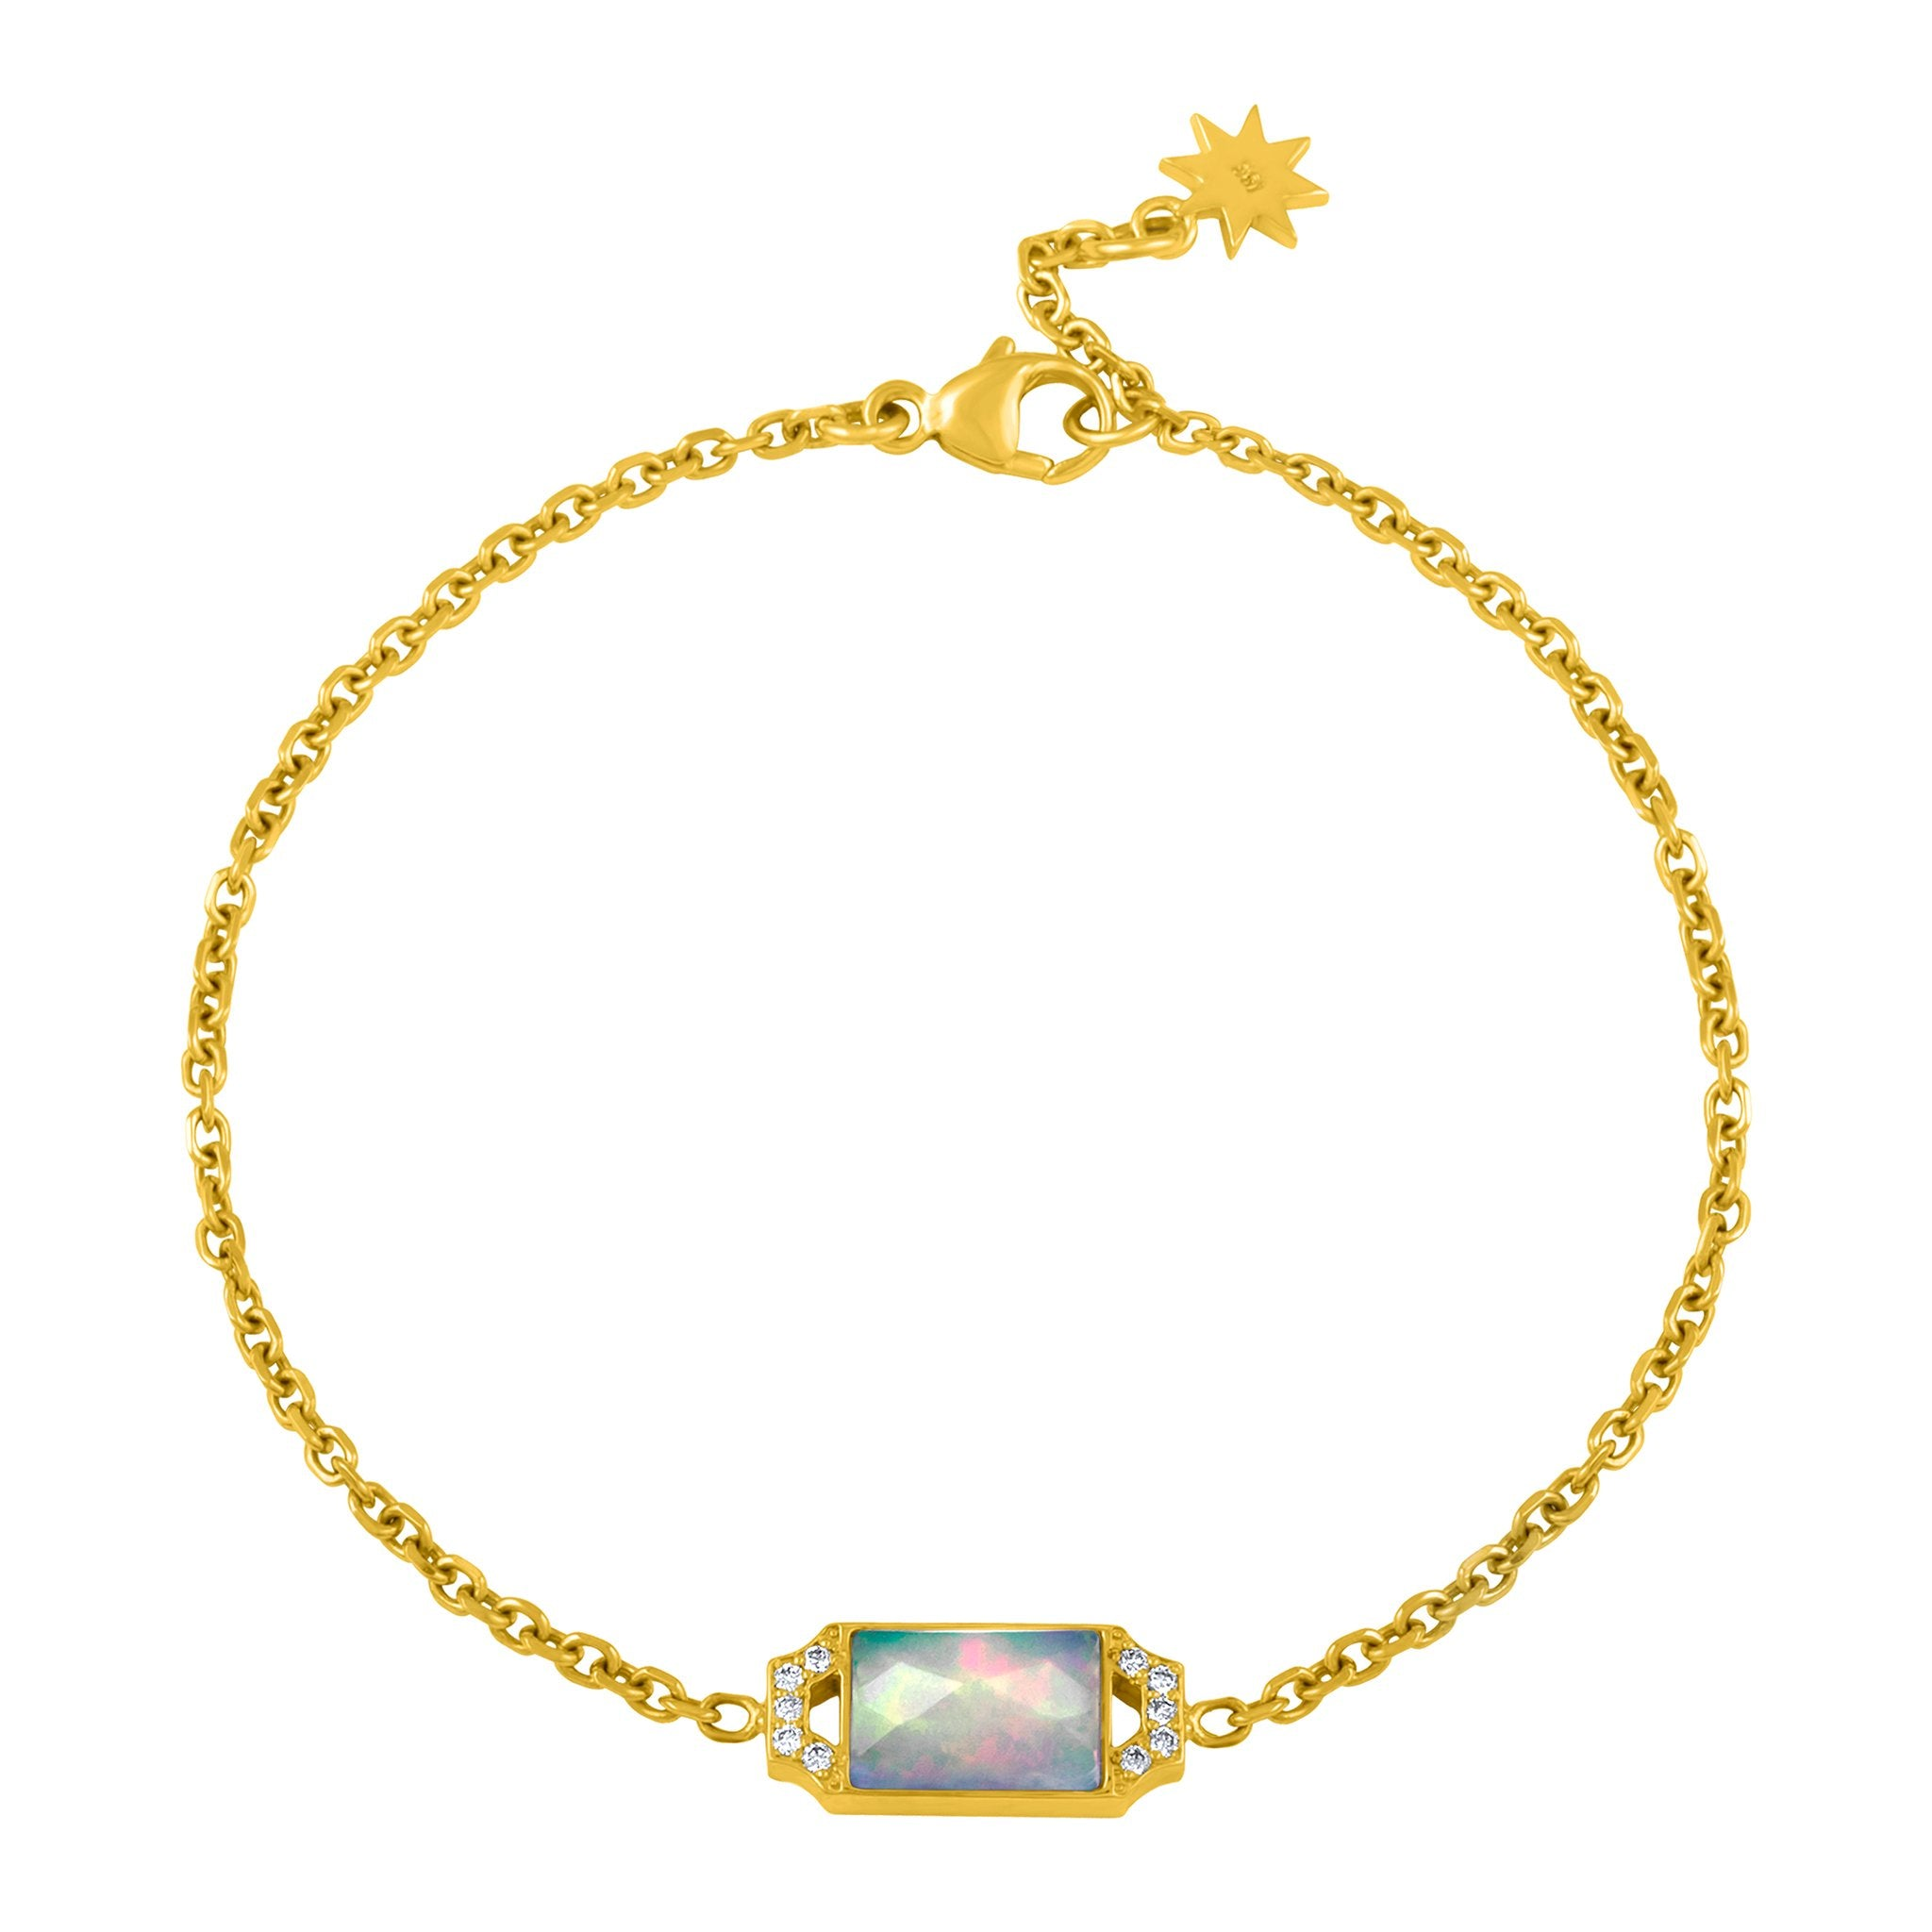 Edge Petite Bracelet: 18k Gold, Opal, Diamonds